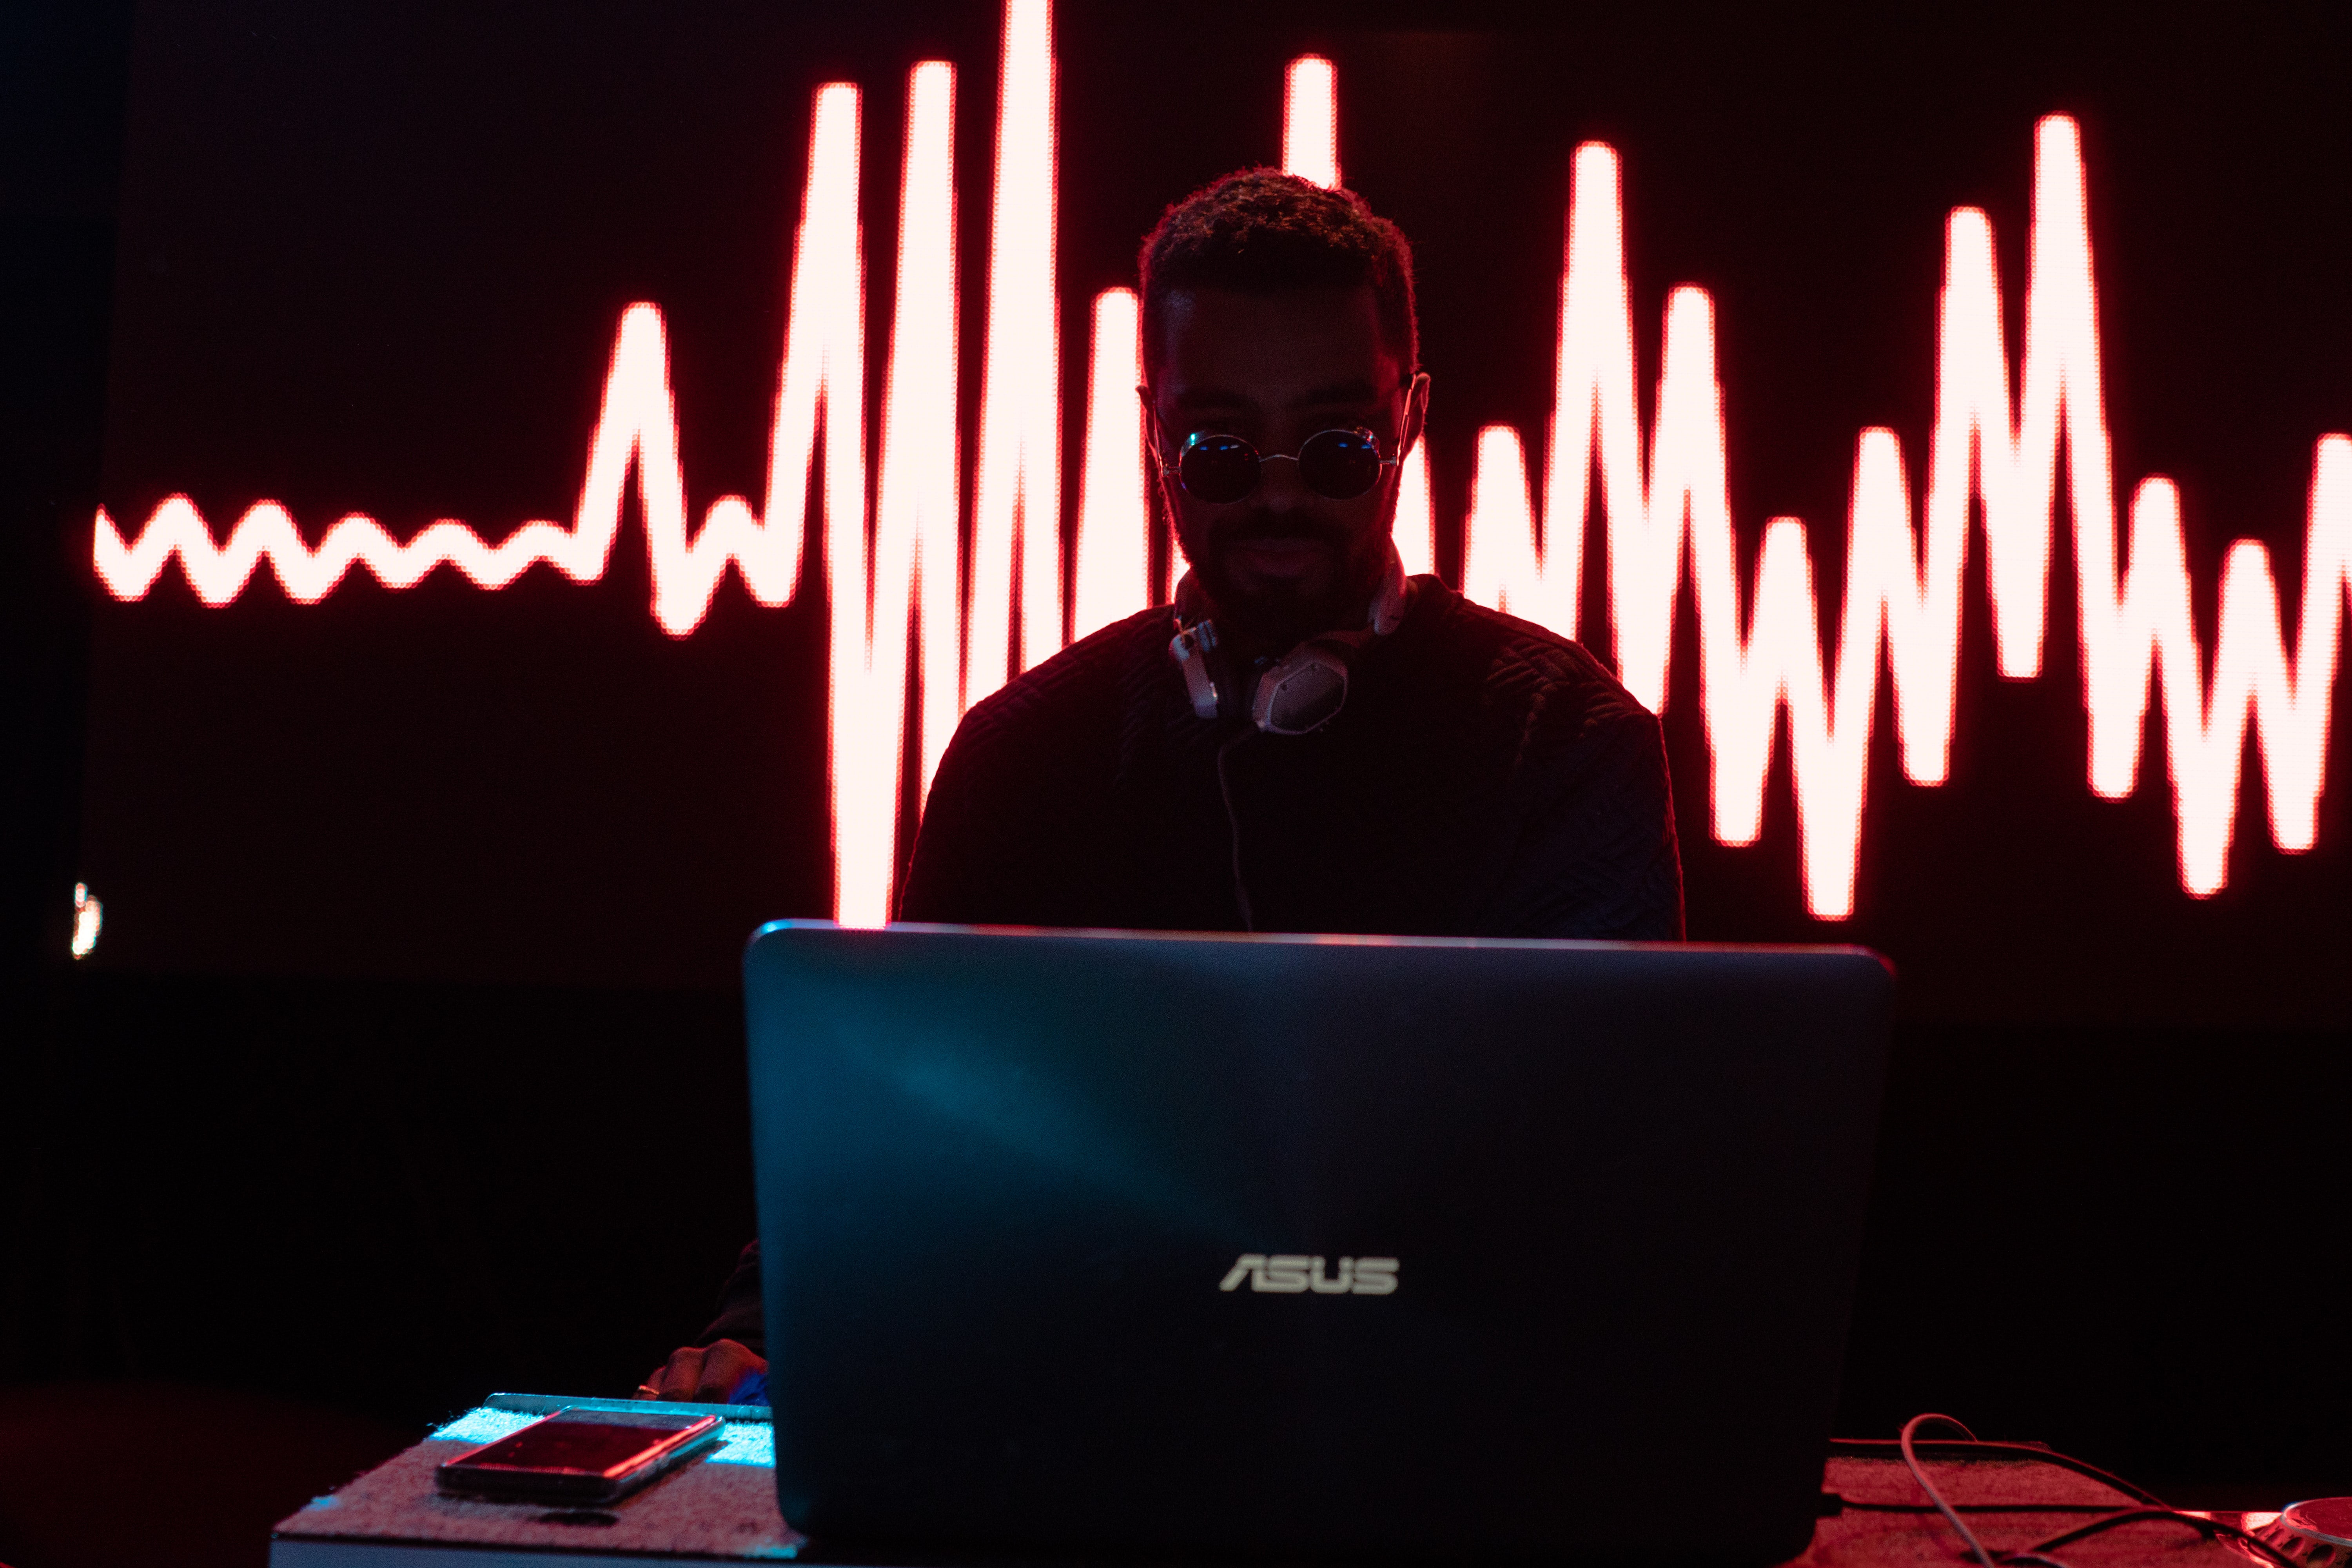 man standing in front Asus laptop